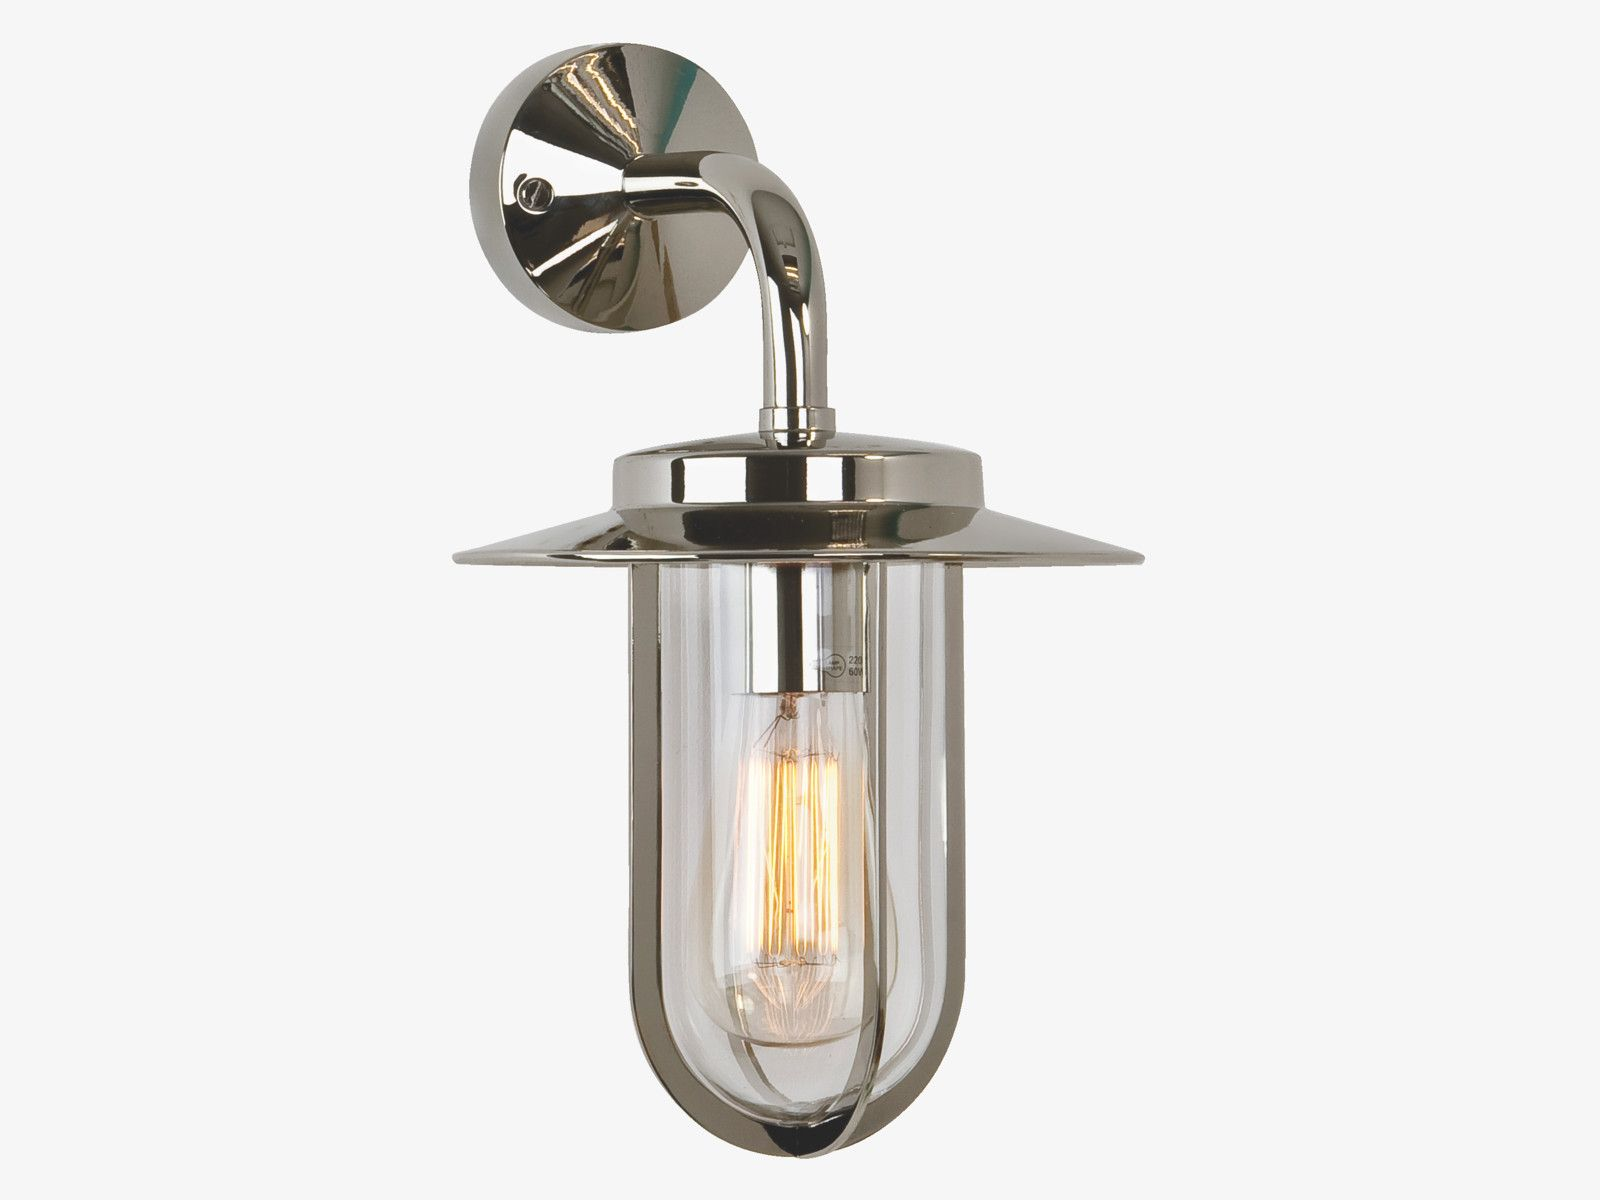 Montparnasse silver metal glass and metal outdoor wall light ip